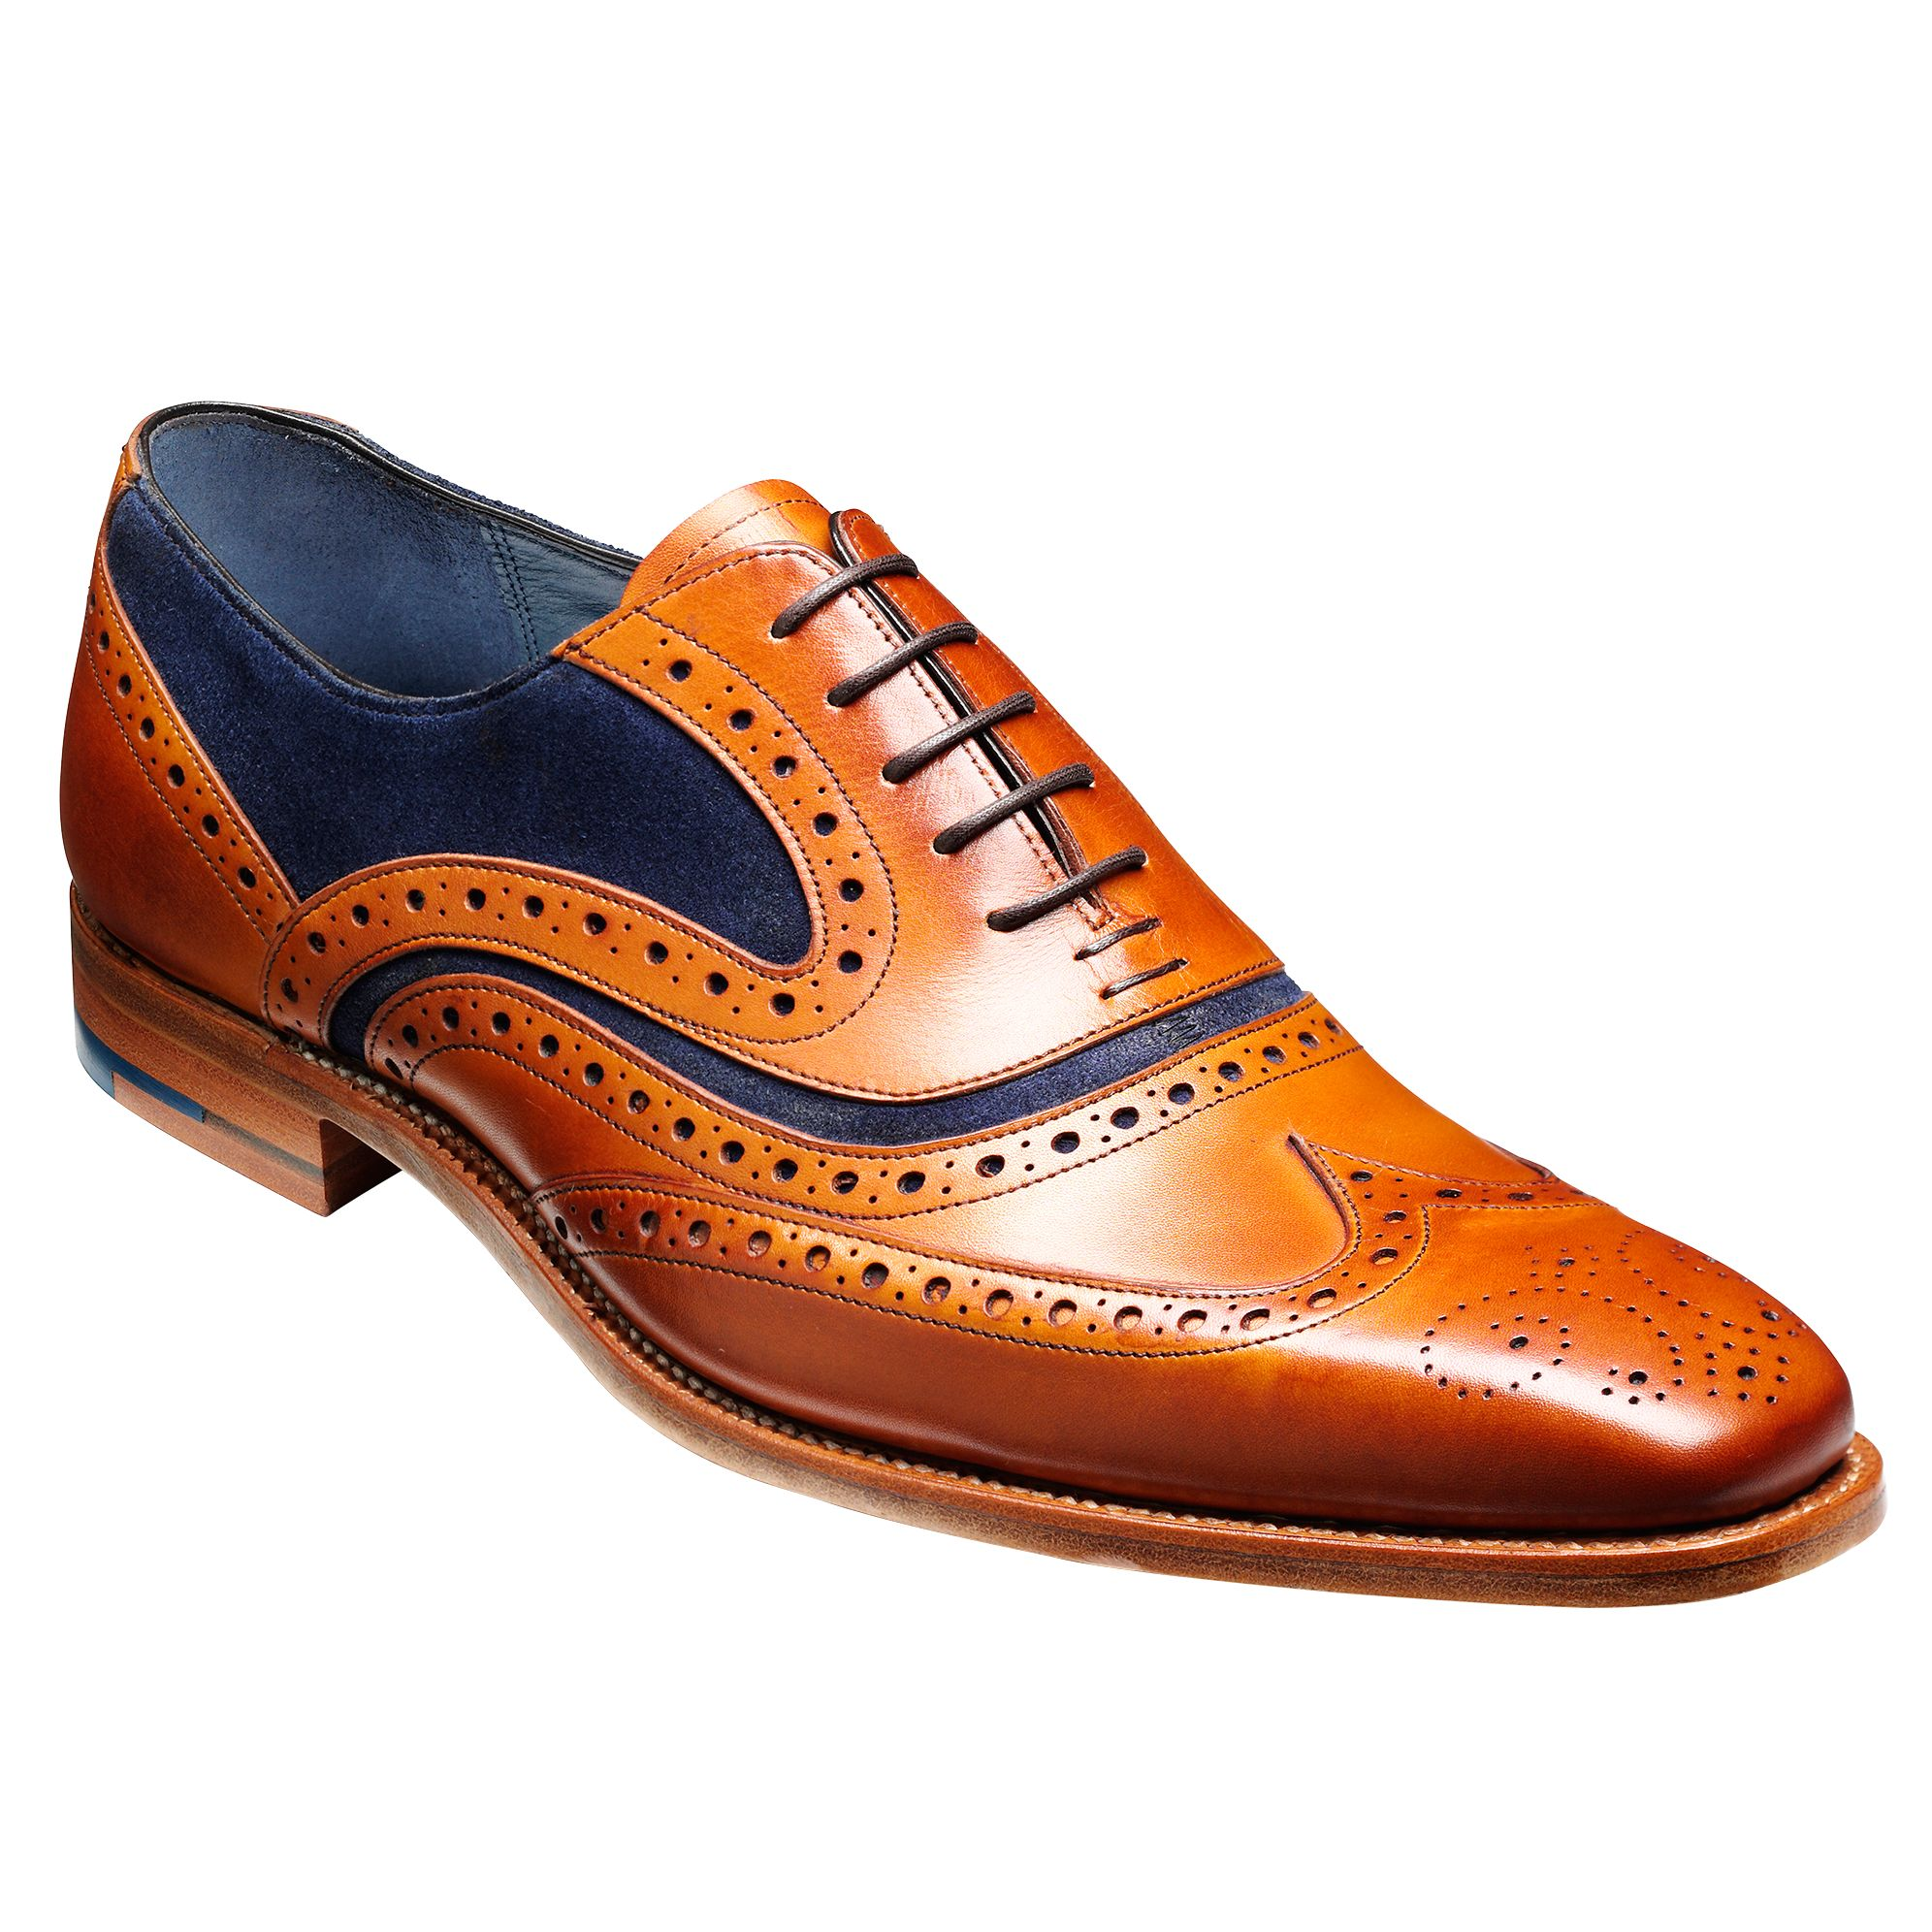 Barker Barker McClean Goodyear Welted Leather Brogue Shoes, Cedar/Blue